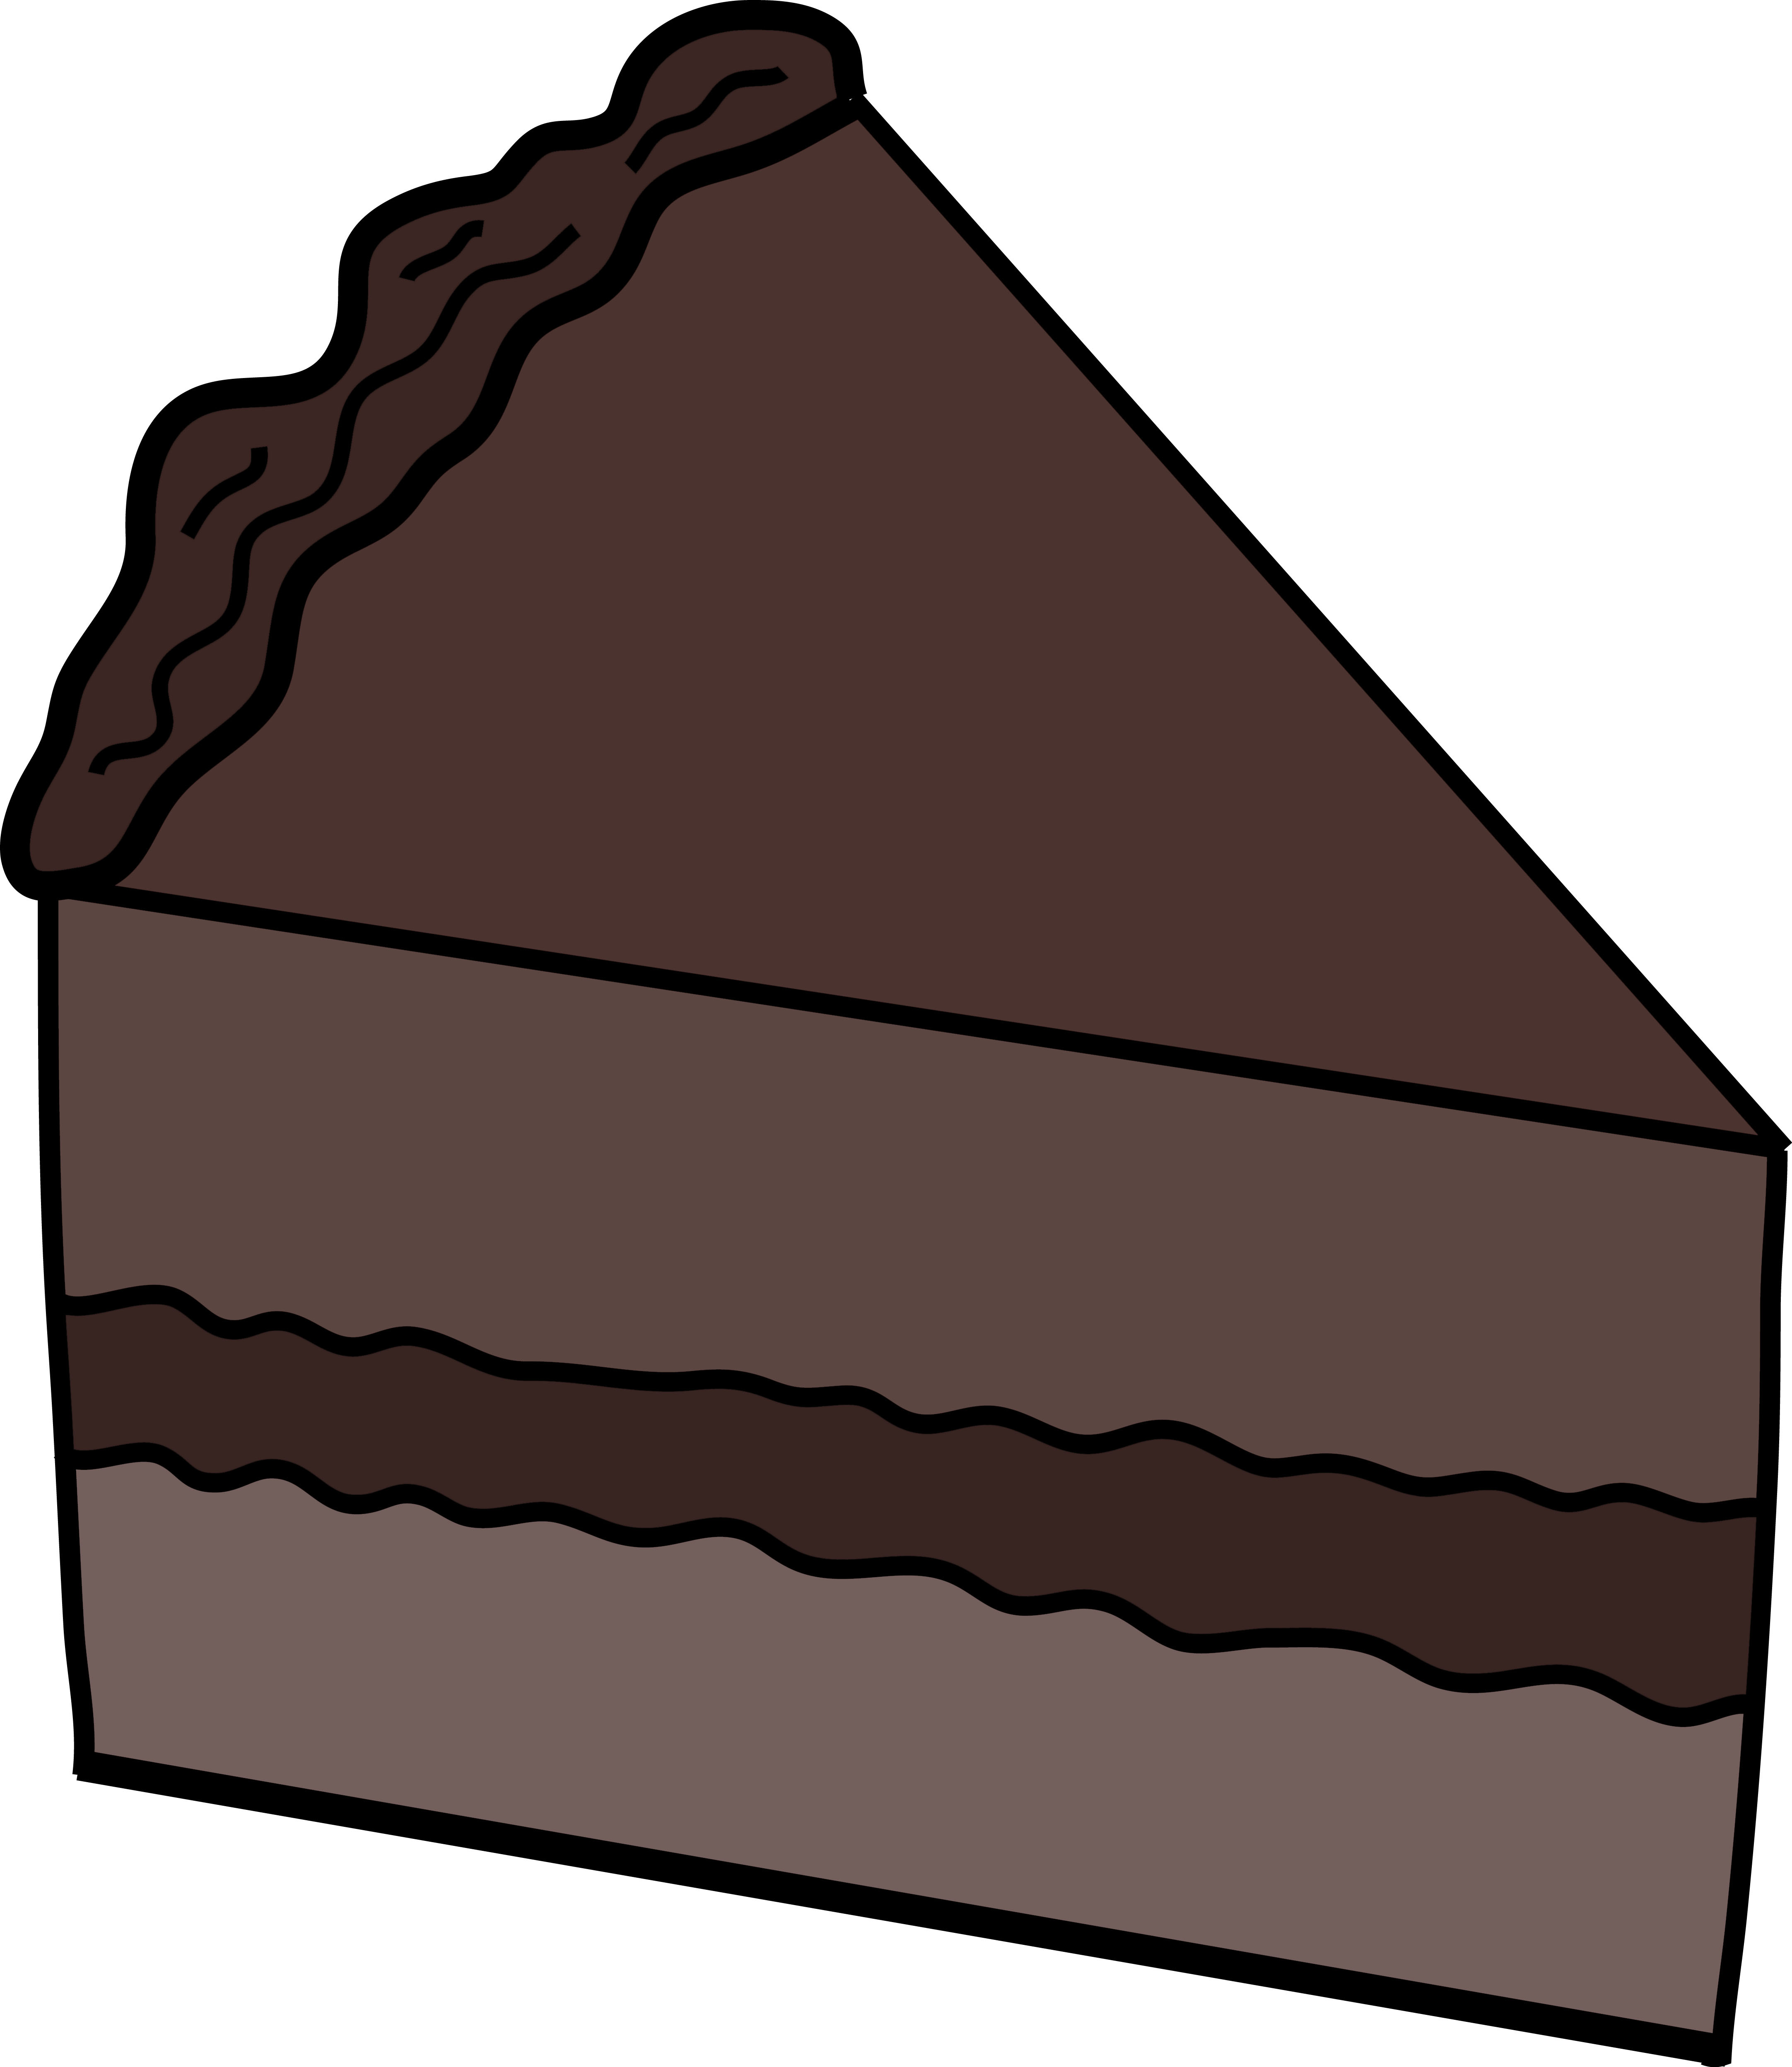 Chocolate Cake - ClipArt Best